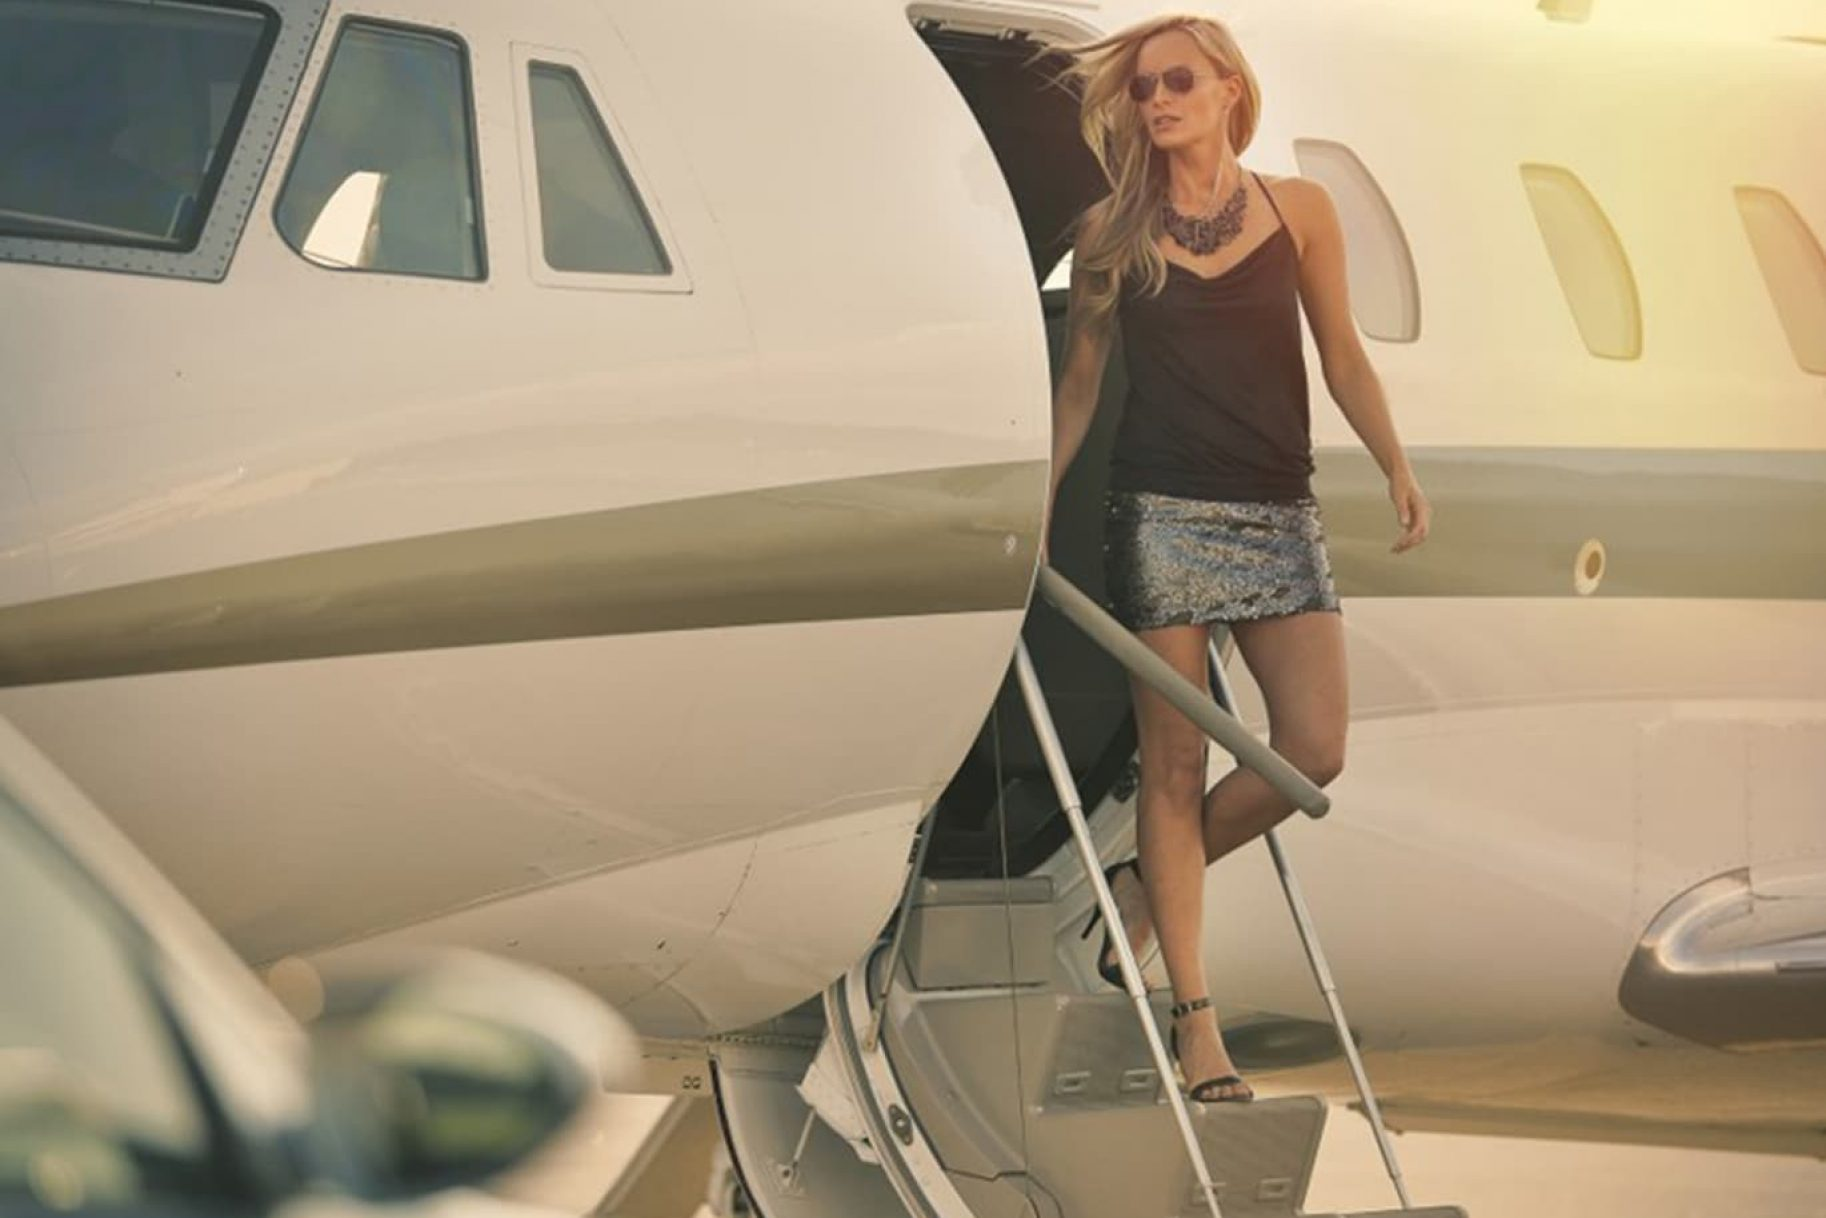 A woman steps down from a private jet at sunset